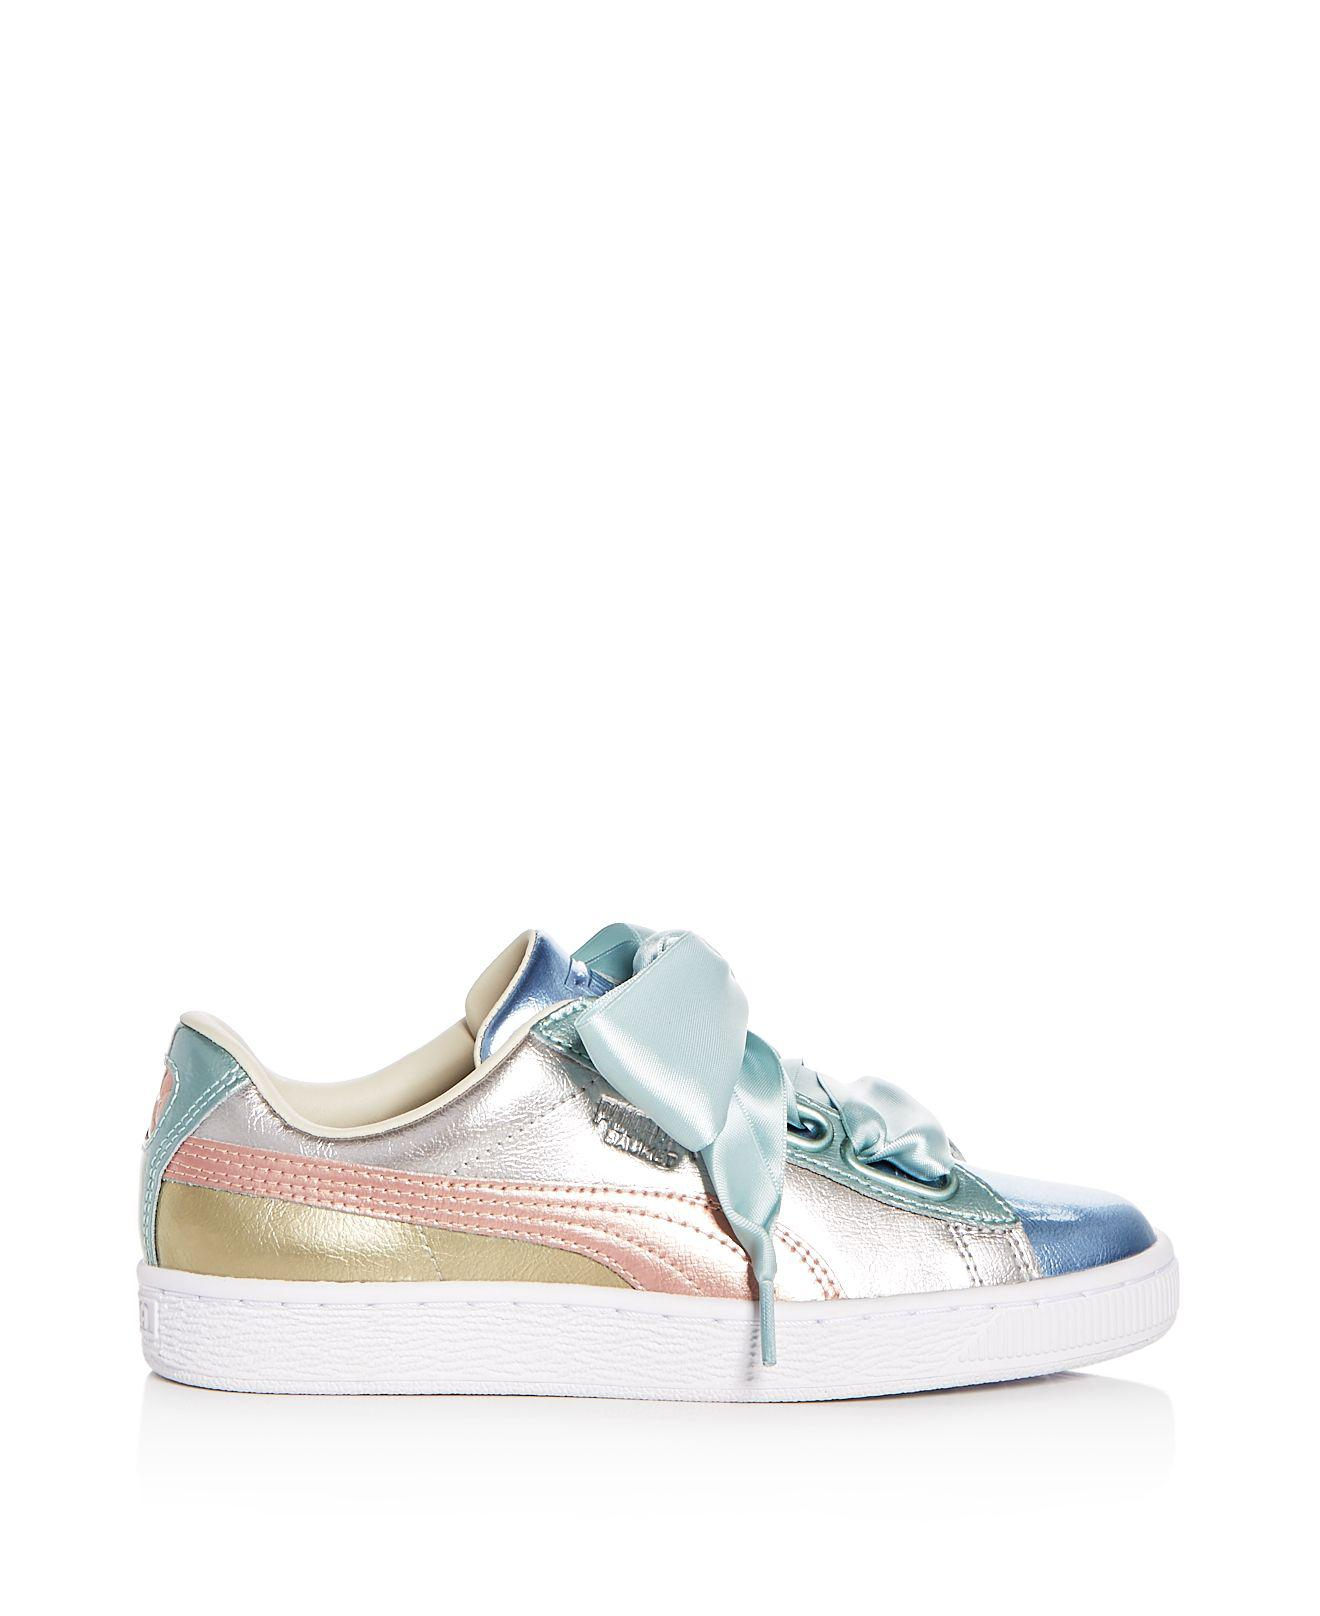 low priced 0ac97 ec49b PUMA Gray Women's Basket Heart Bauble Leather & Suede Lace Up Sneakers